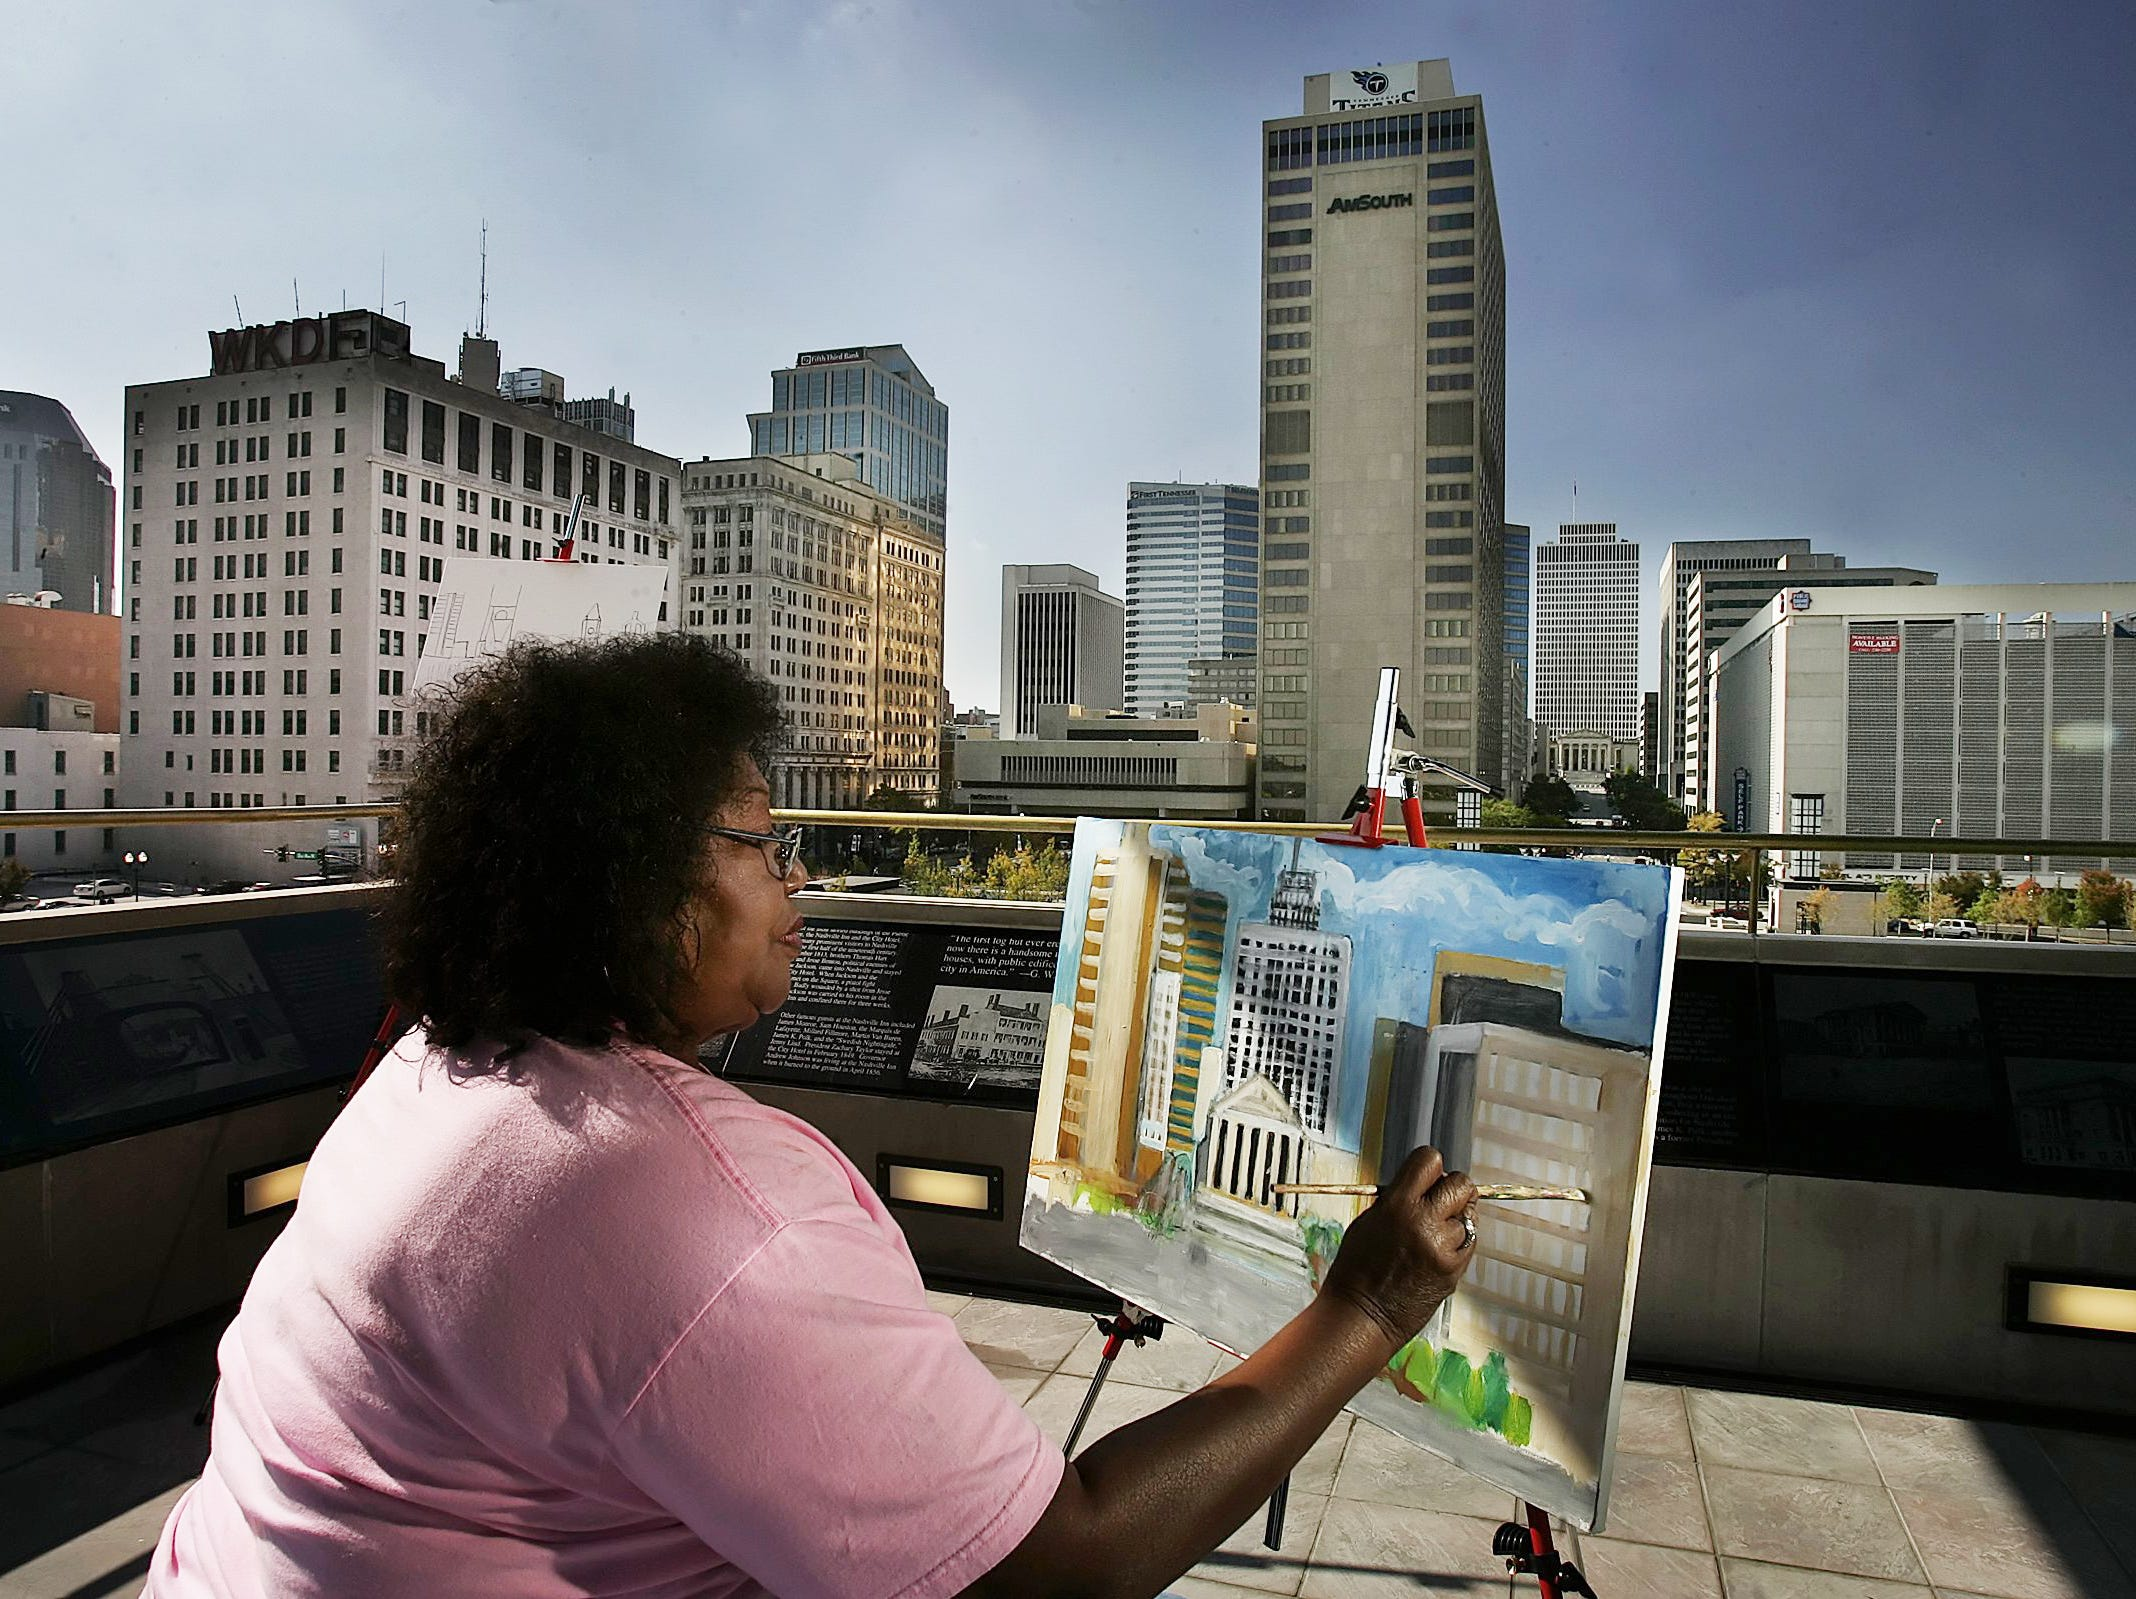 Teresa Scott is one of several art students painting their views of the Nashville skyline from the observation deck at the new Public Square Park at  the Metro Courthouse on Oct. 18, 2006. The observation deck is open seven days a week from 7:30 a.m. to 8 p.m.